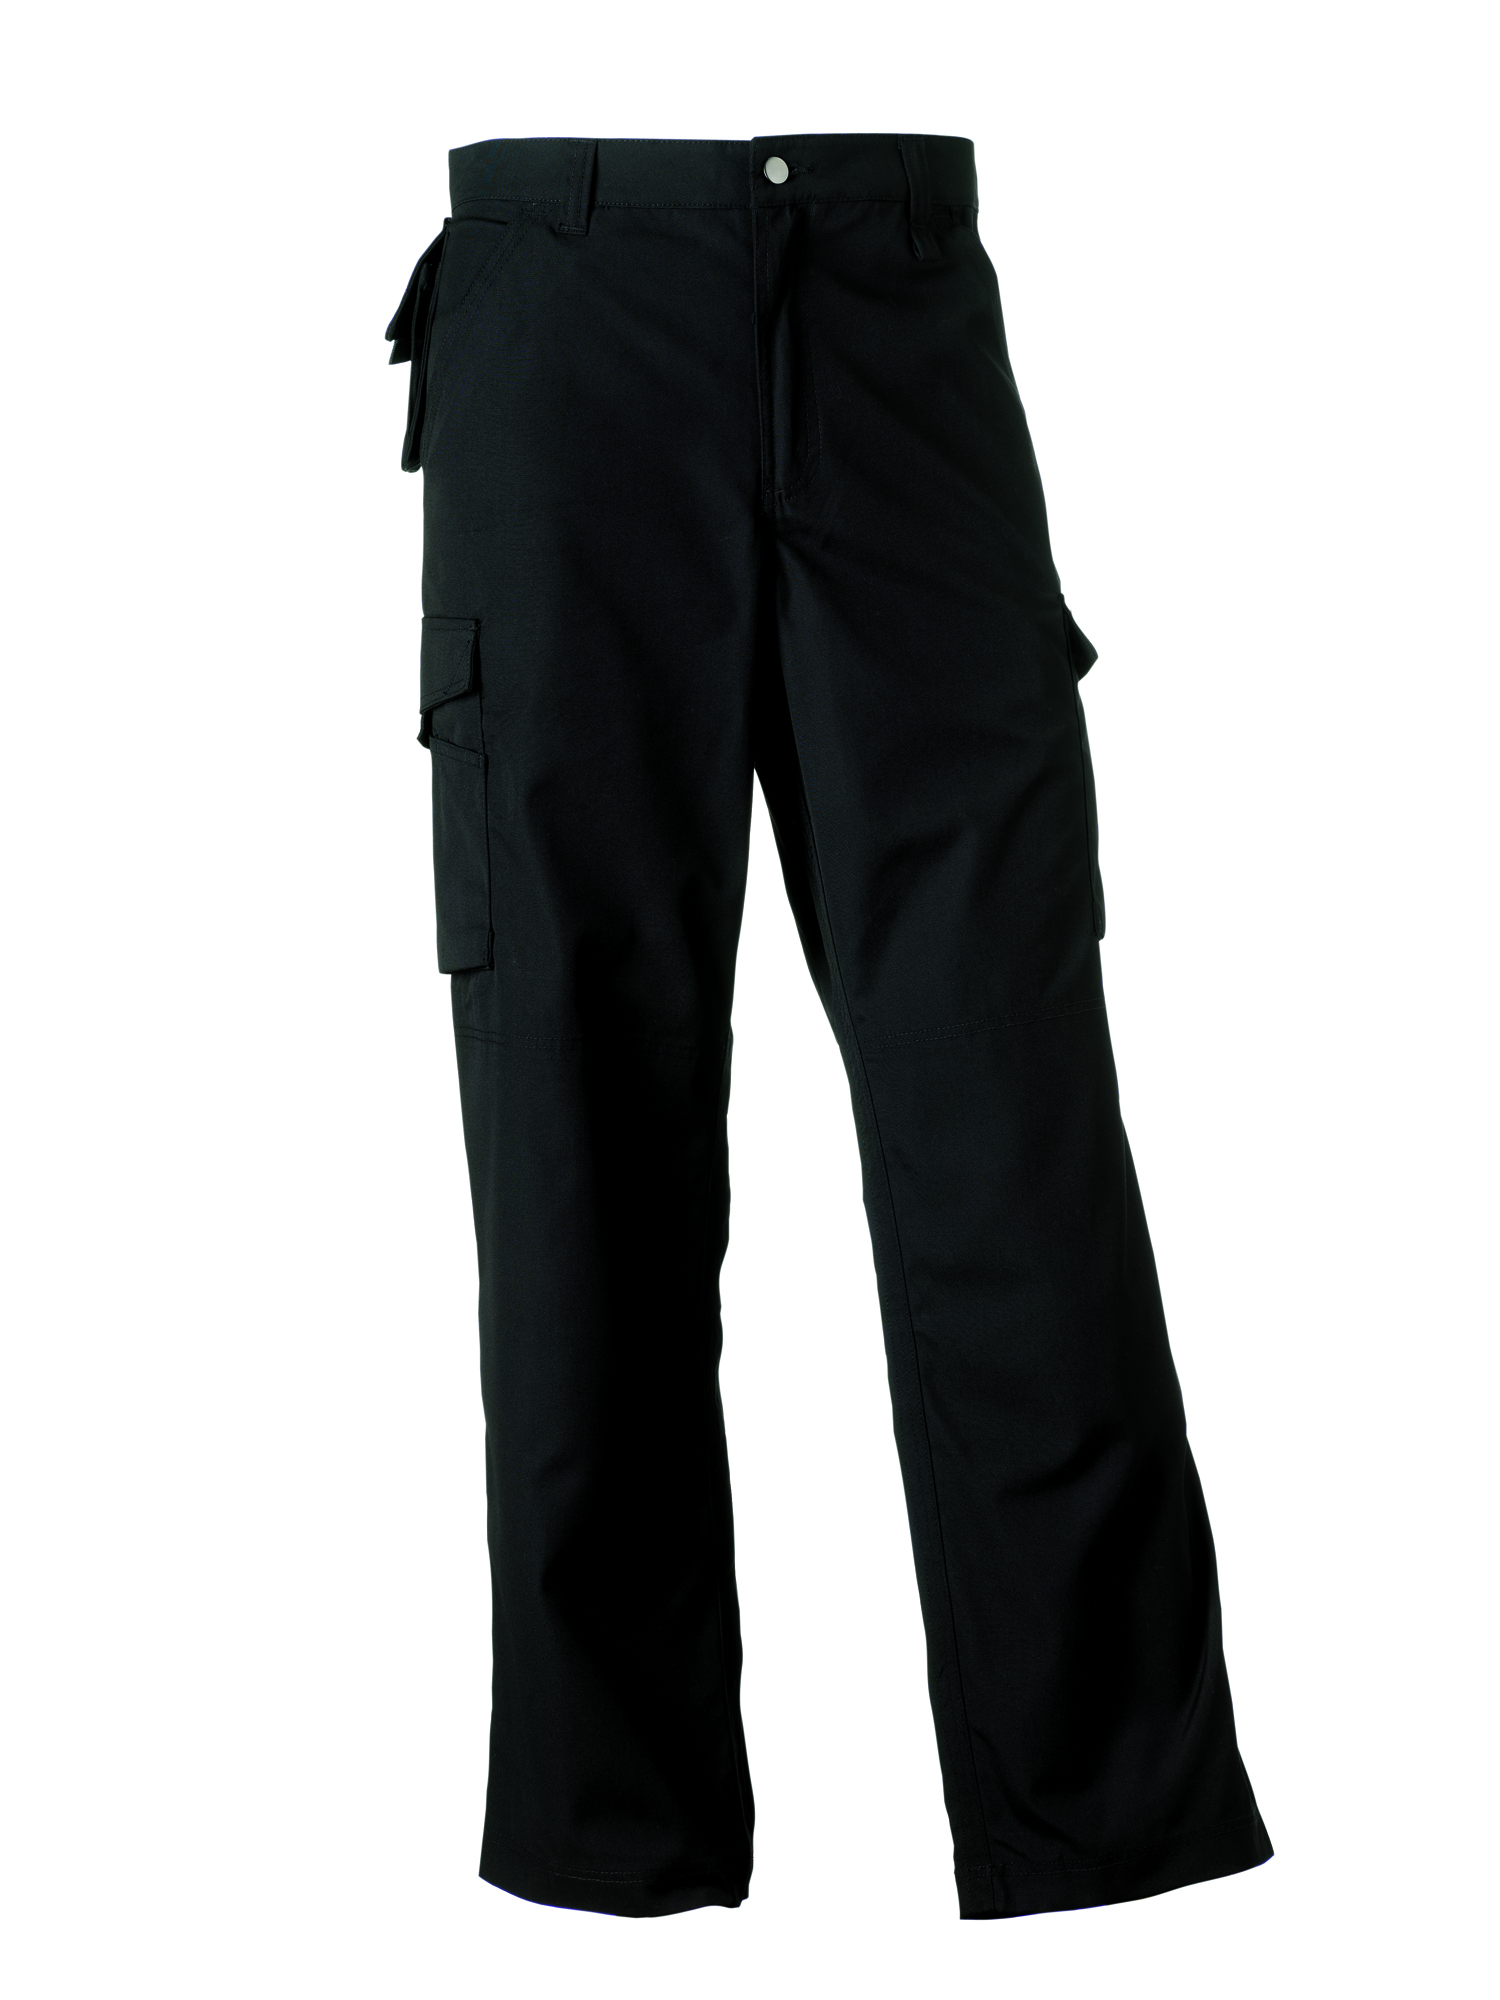 Heavy Duty Trousers  - Black - 48-34